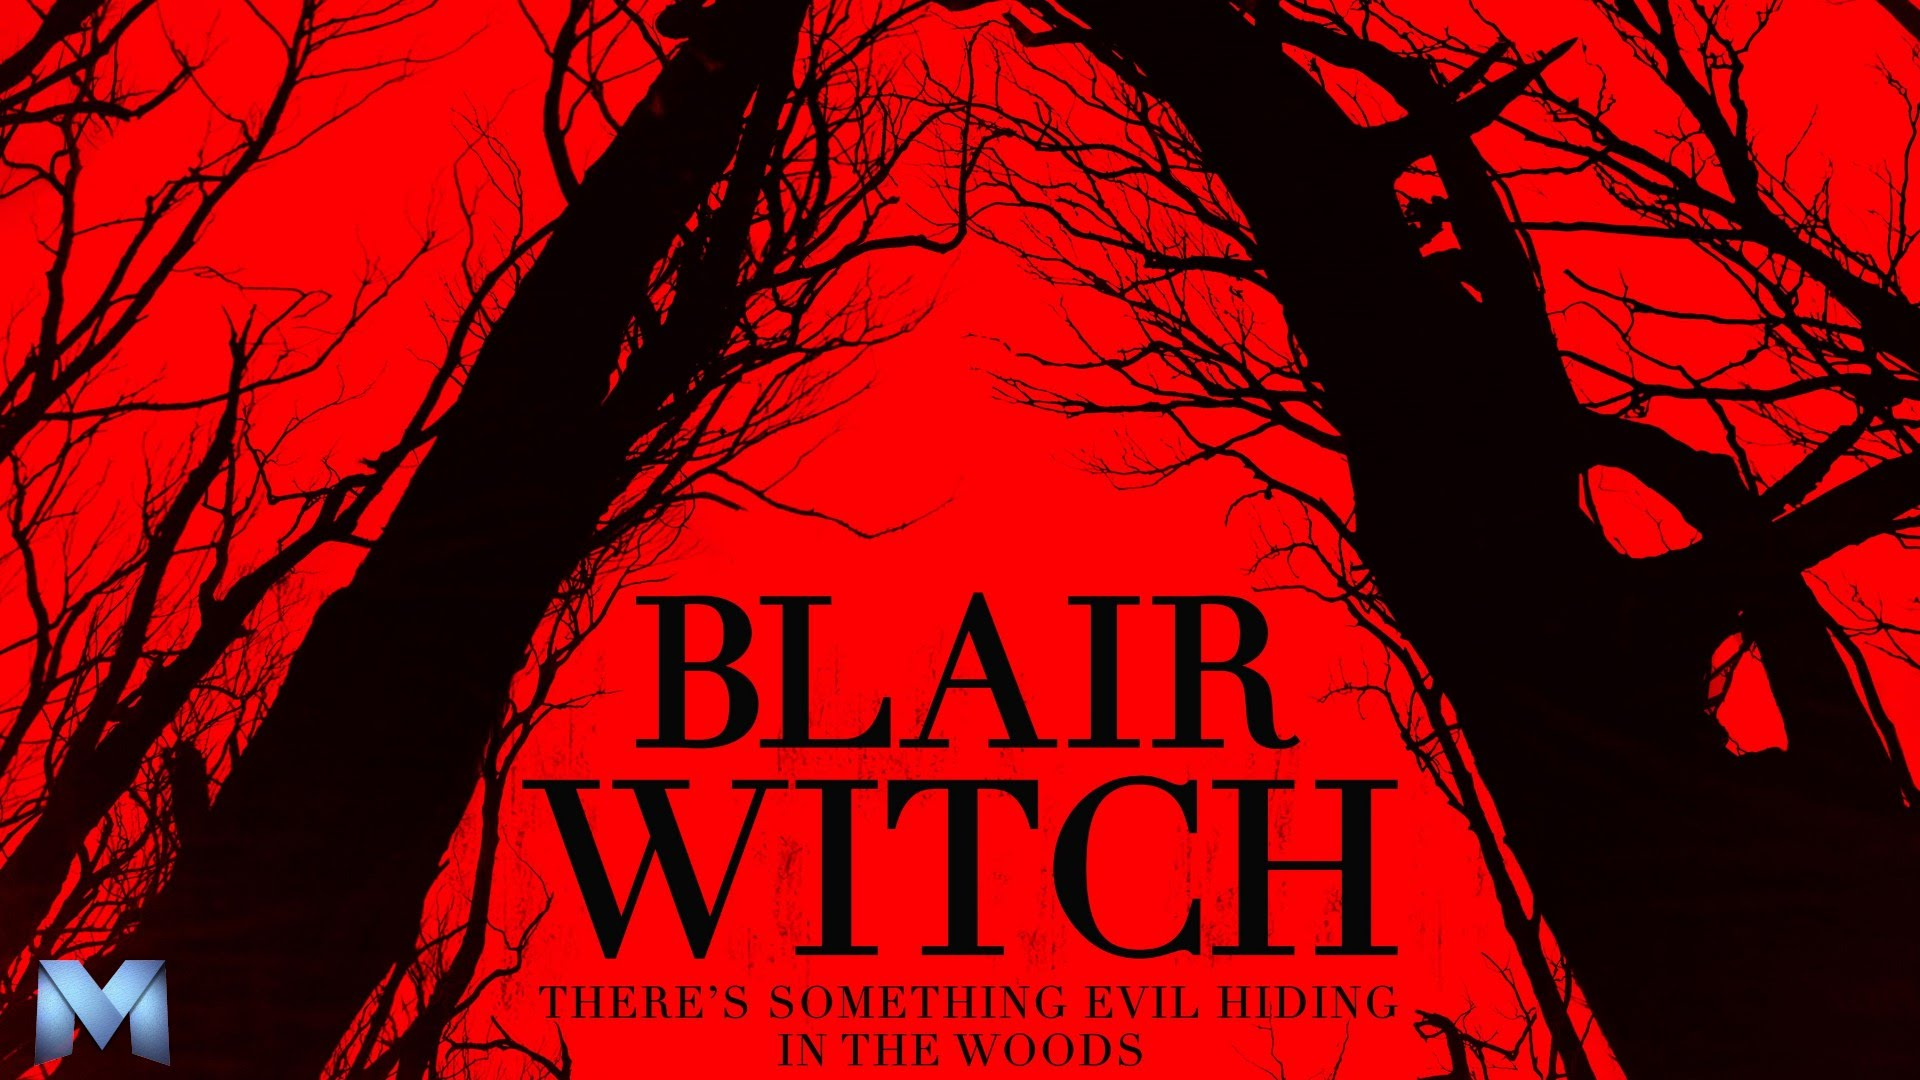 blair witch project 2016 full movie free online